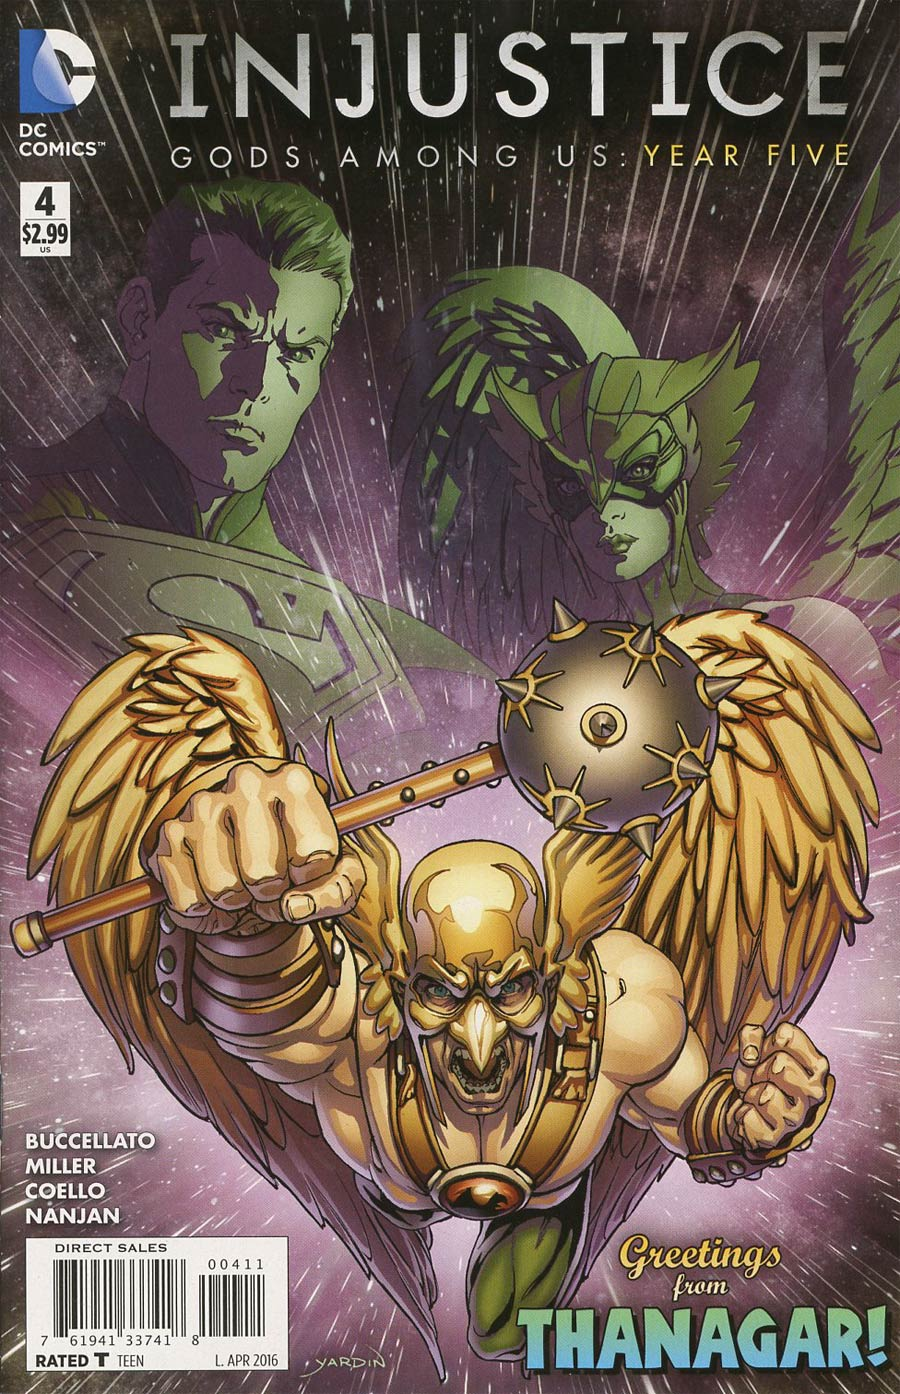 Injustice Gods Among Us Year Five #4